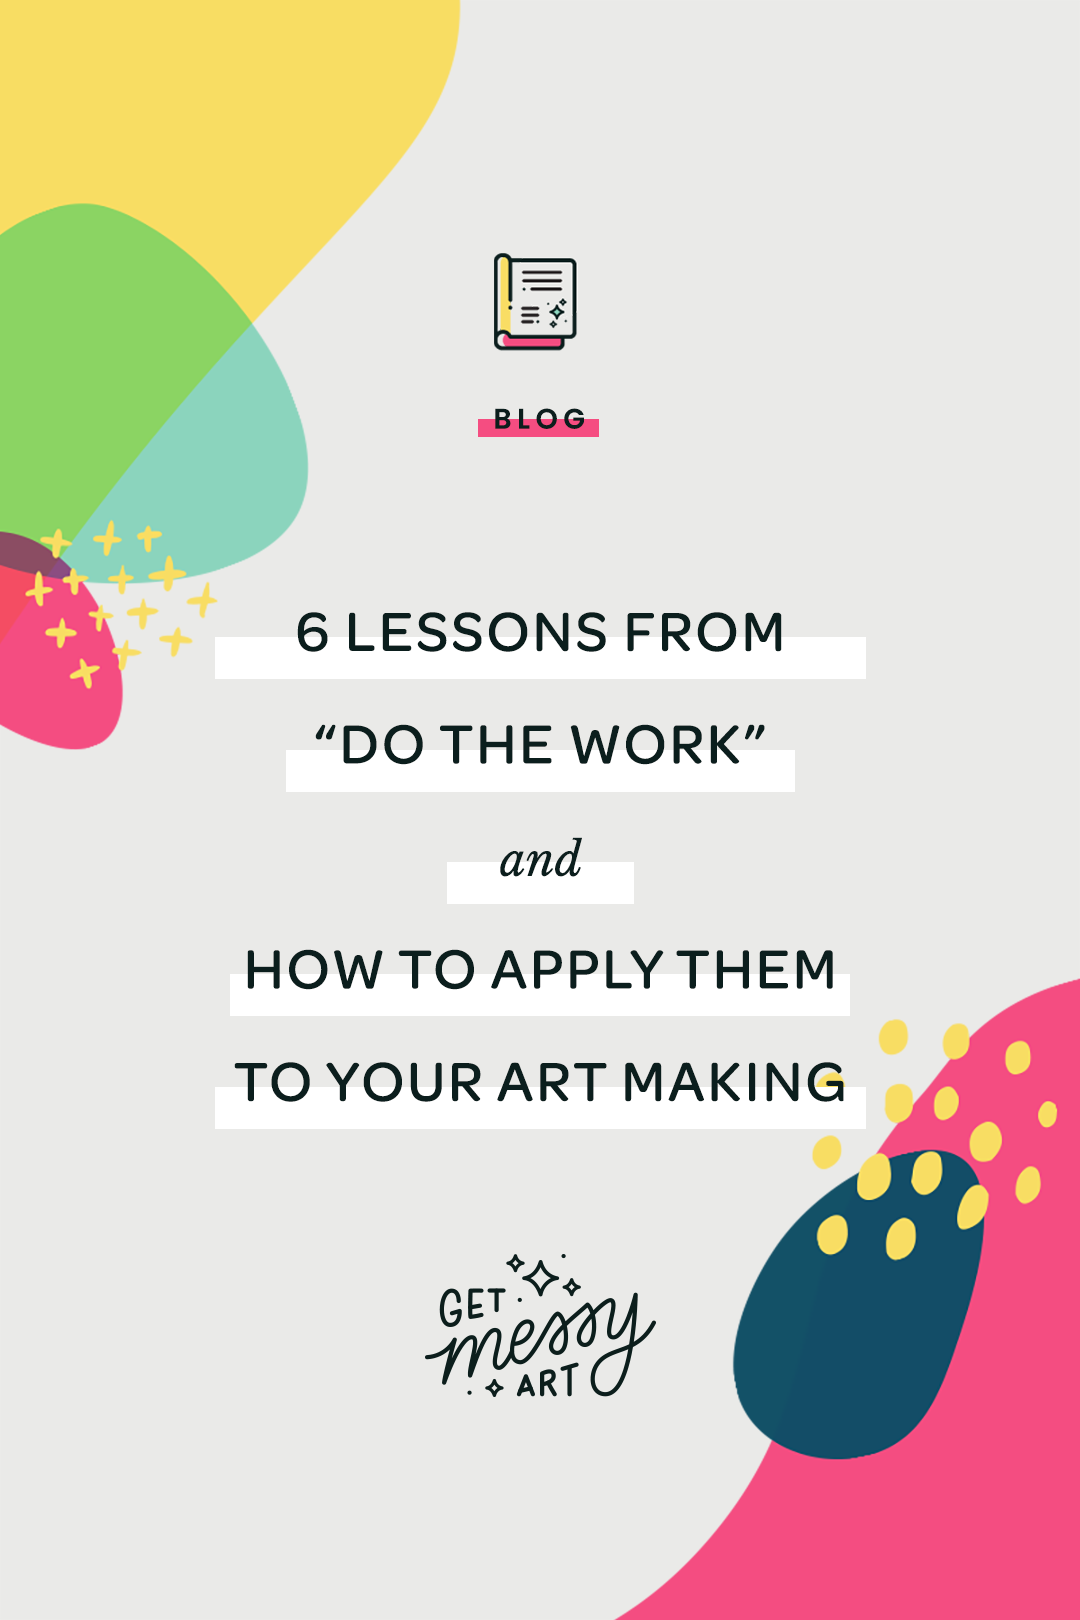 6 Lessons from 'Do the Work' by Steven Pressfield – and how to apply them to your art making